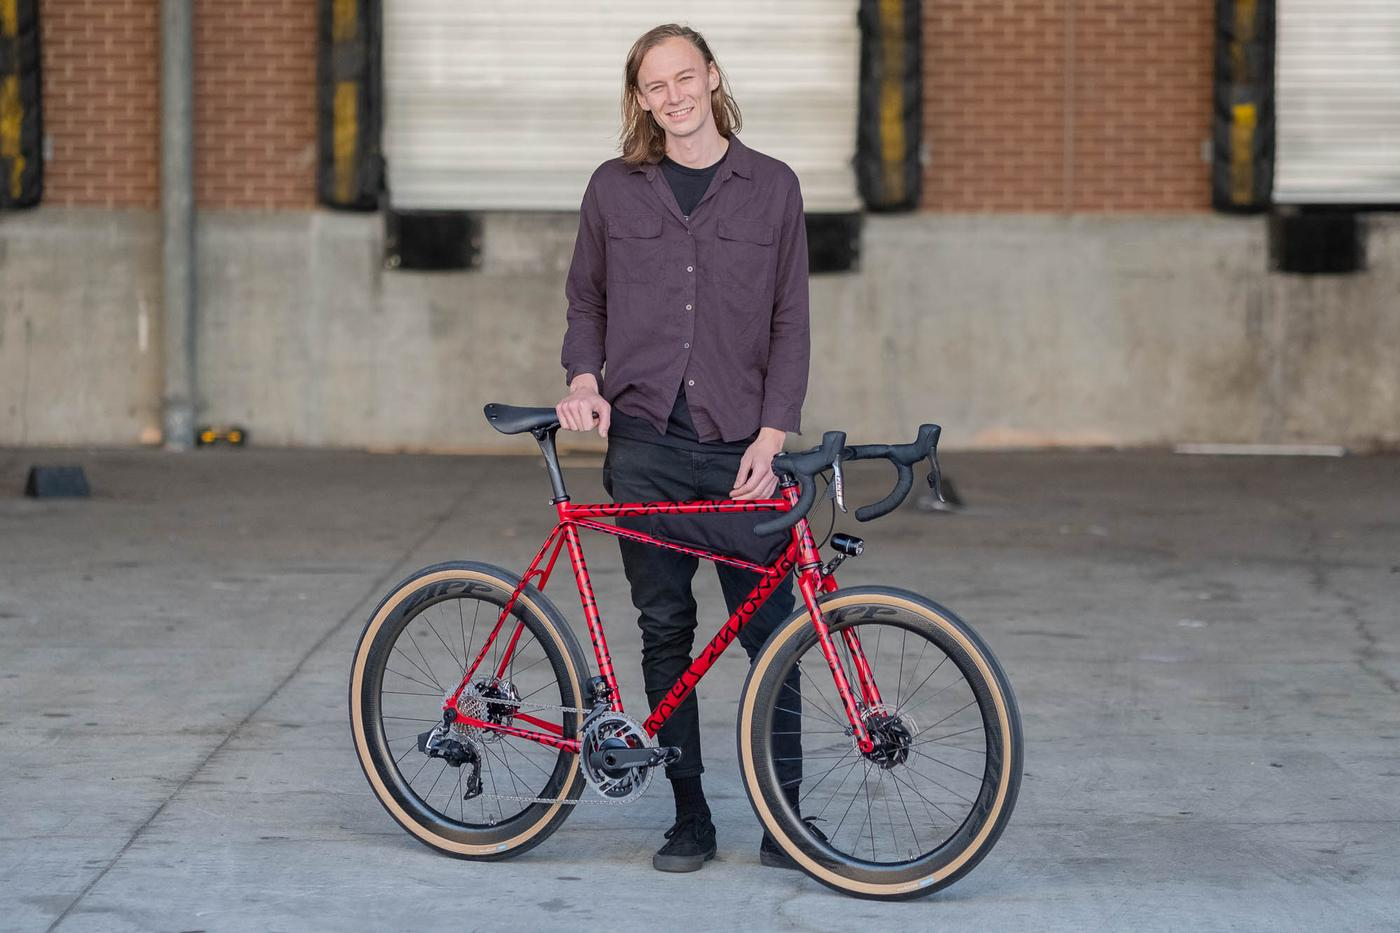 Untitled Cycles Launches: Founder Jacqueline Mautner Creates Fundraiser